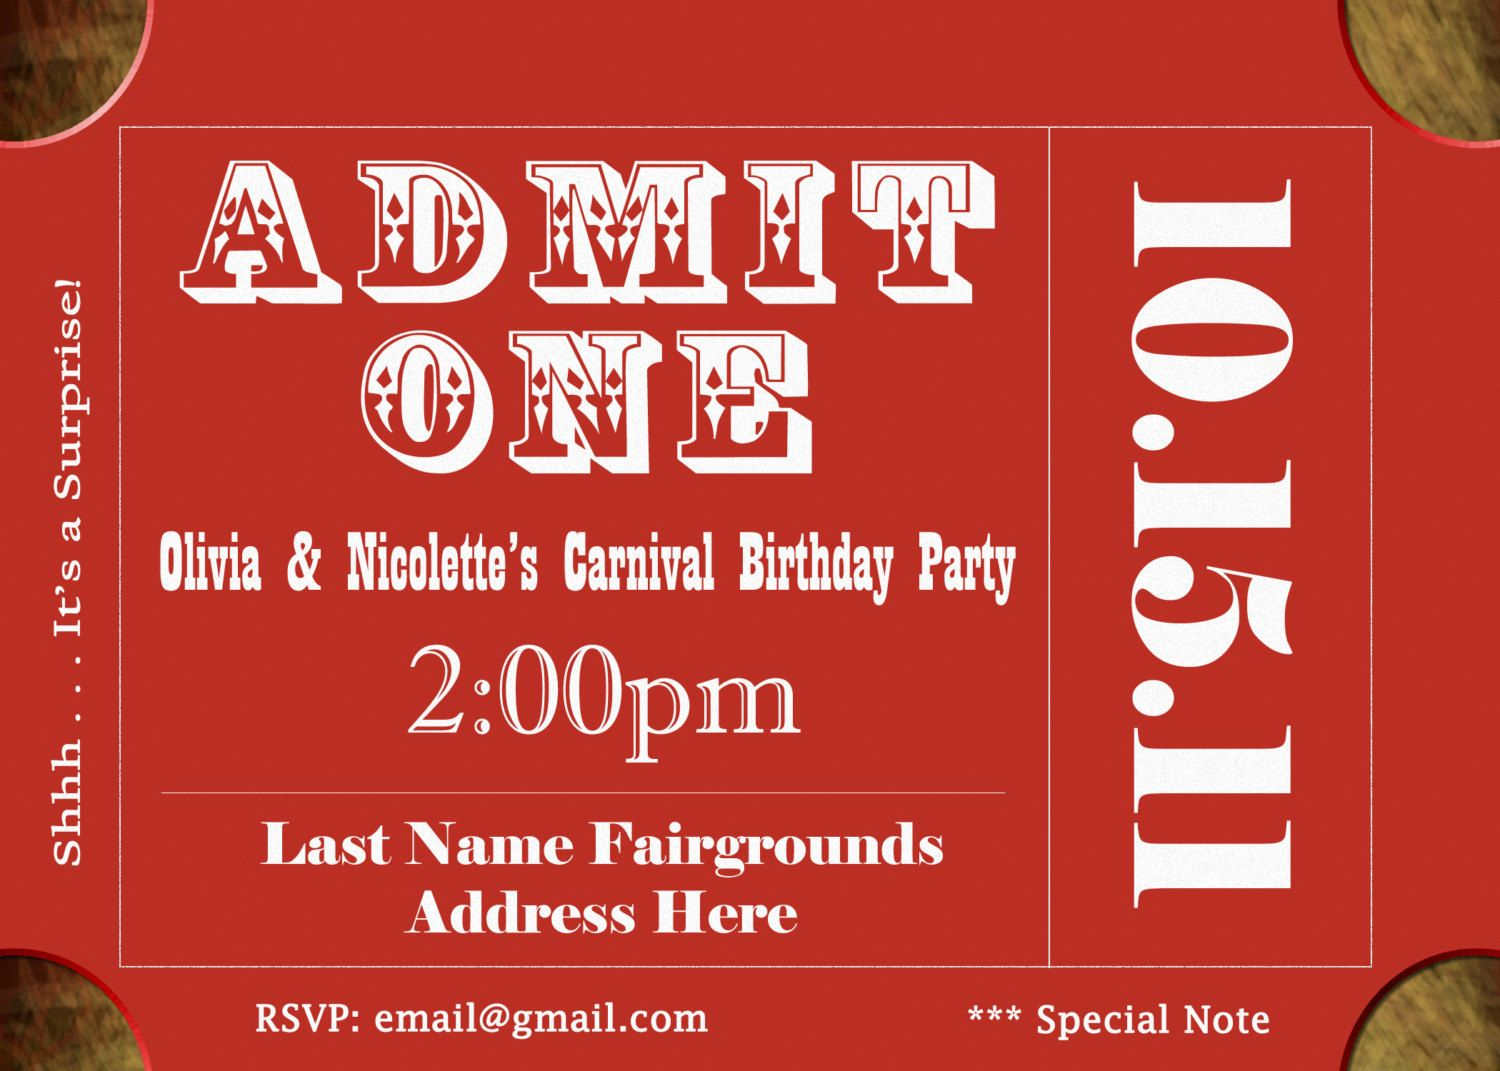 Carnival Invite Circus By Jrcreativedesigns On Etsy Ticket Birthday Invitations